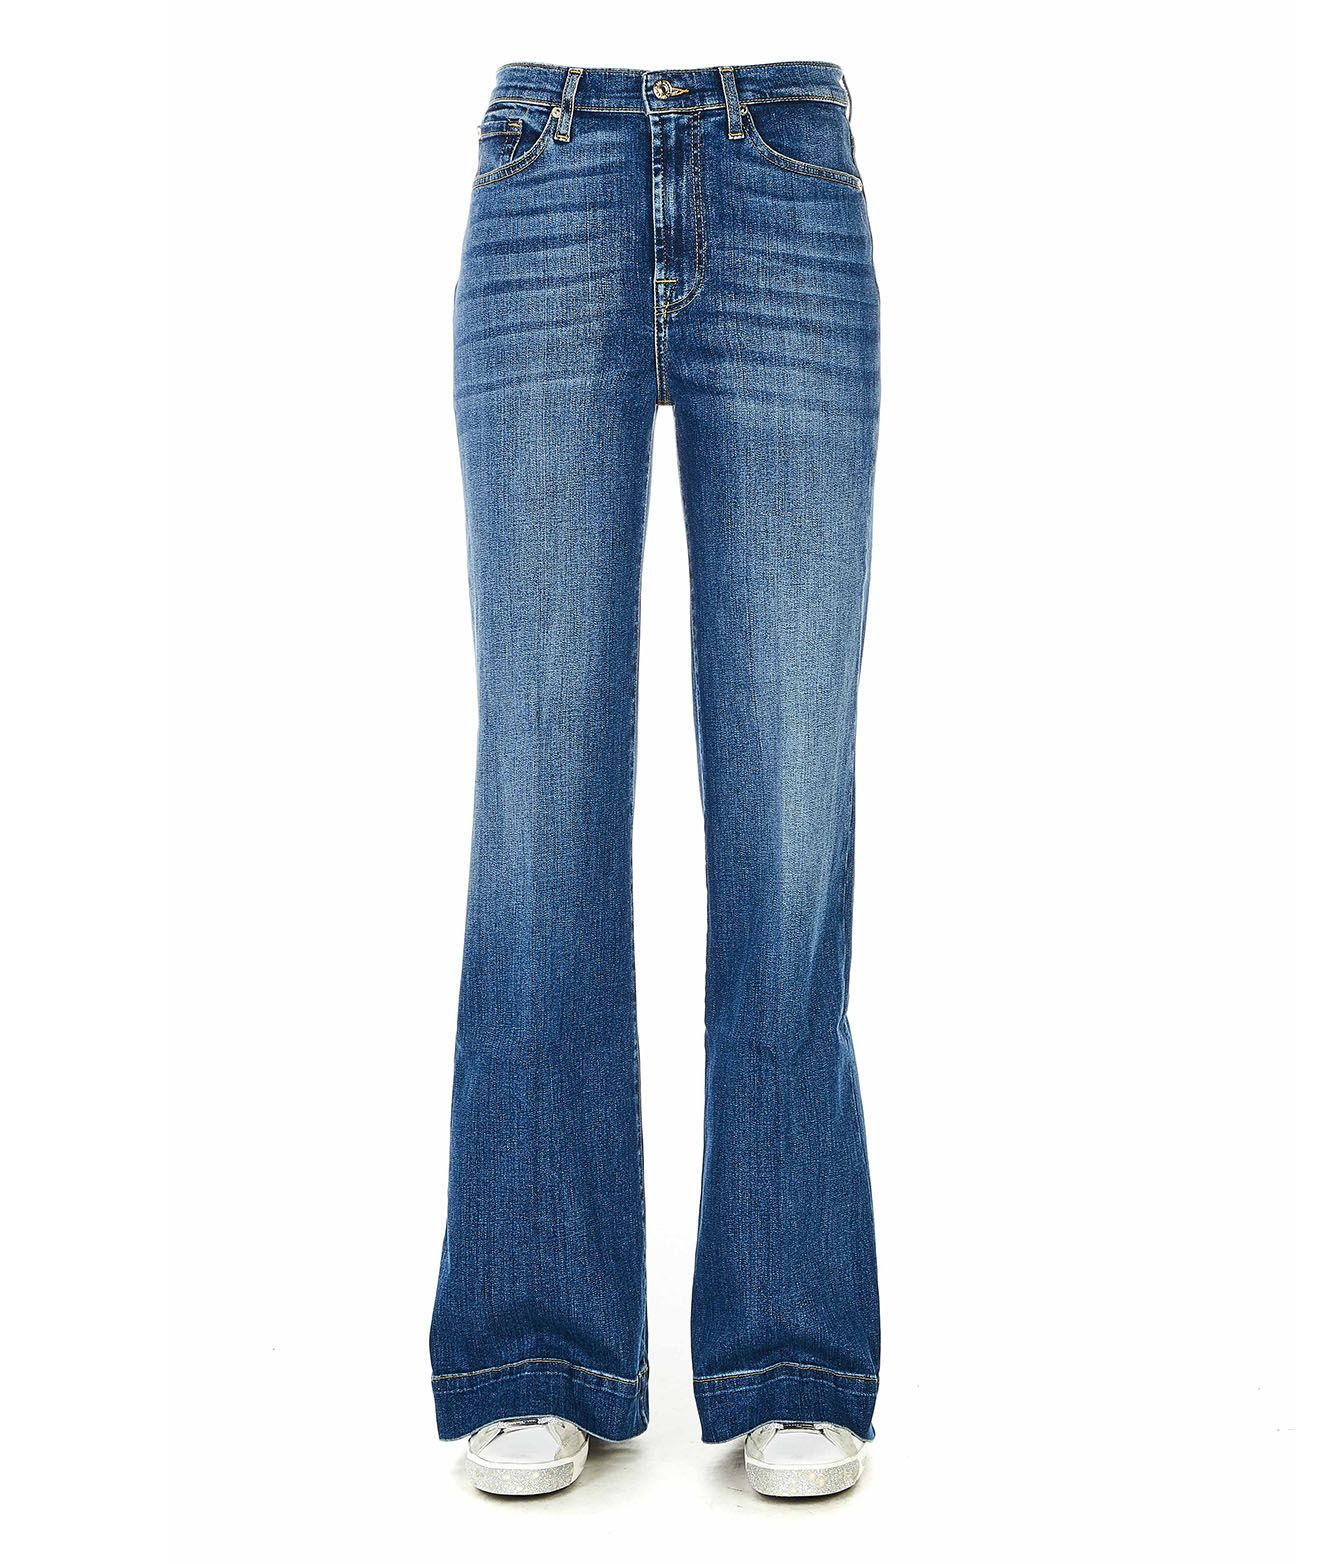 7 FOR ALL MANKIND JEANS 'HIGH RISE FLARE'